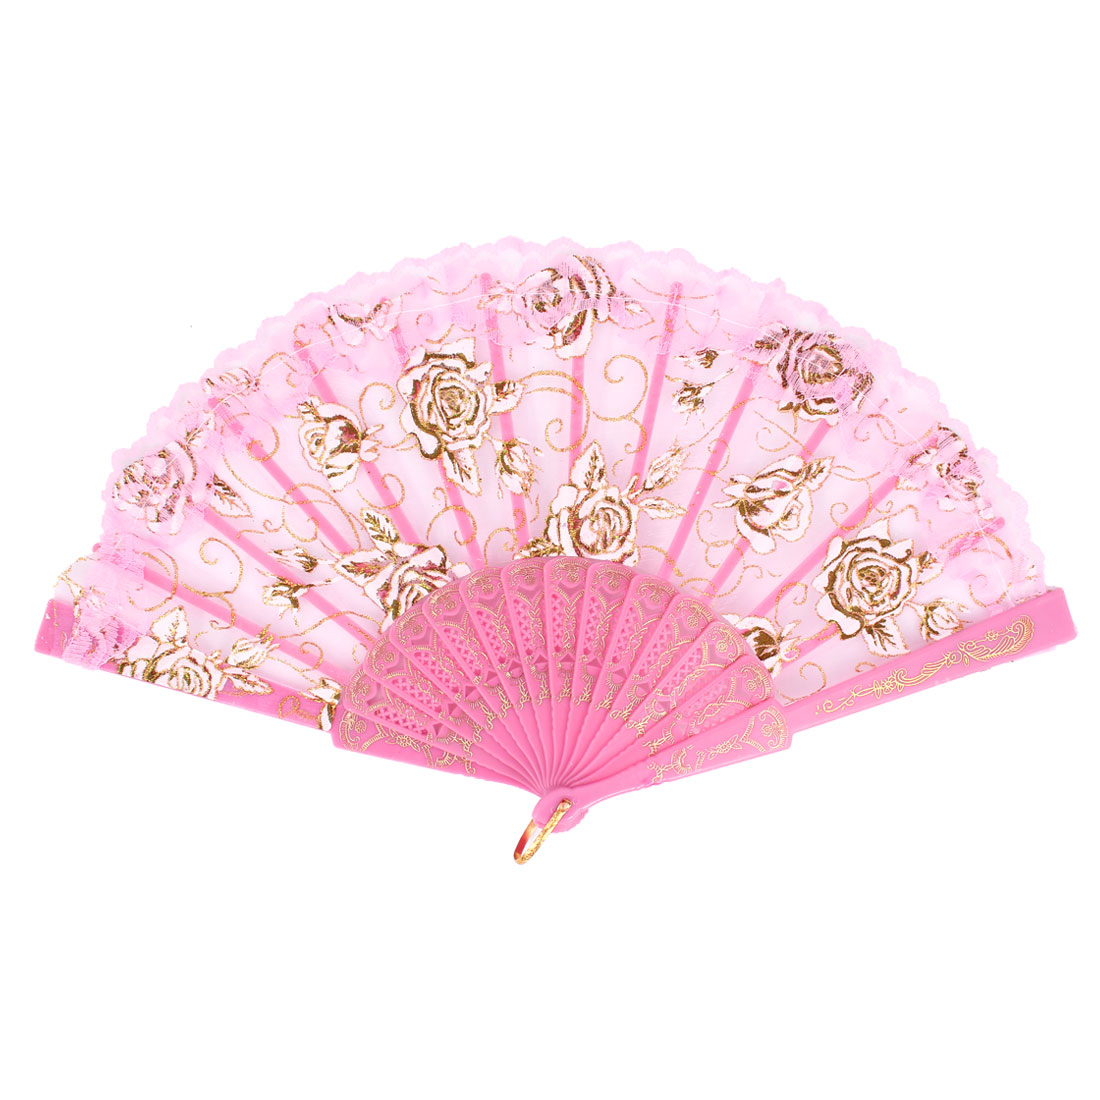 Pink Carved Plastic Rib Lace Edge Rose Pattern Dancing Folding Hand Fan